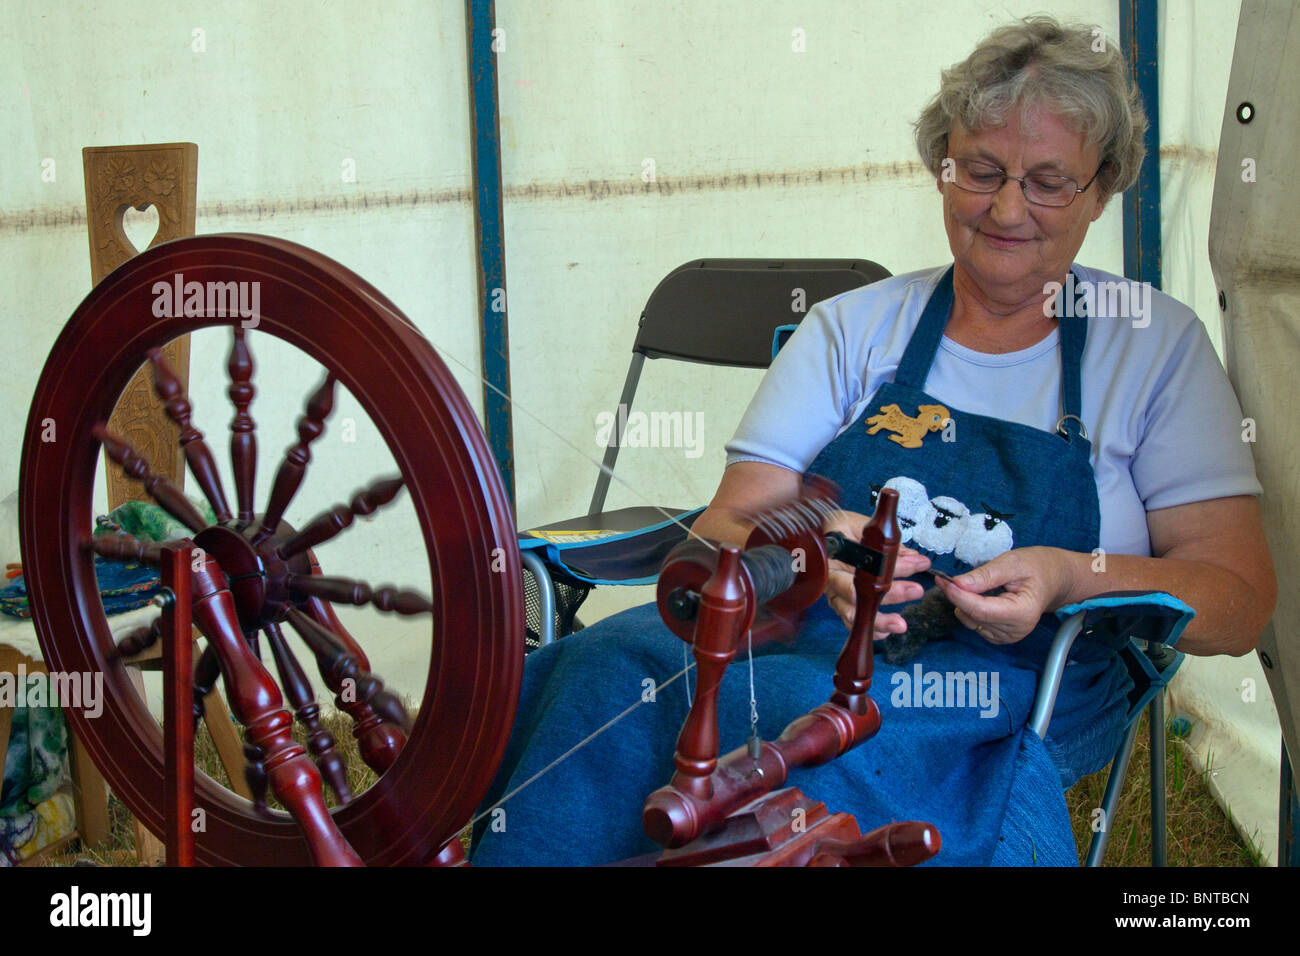 Old dear using an ancient spinning wheel, showing the art of wool spinning Stock Photo